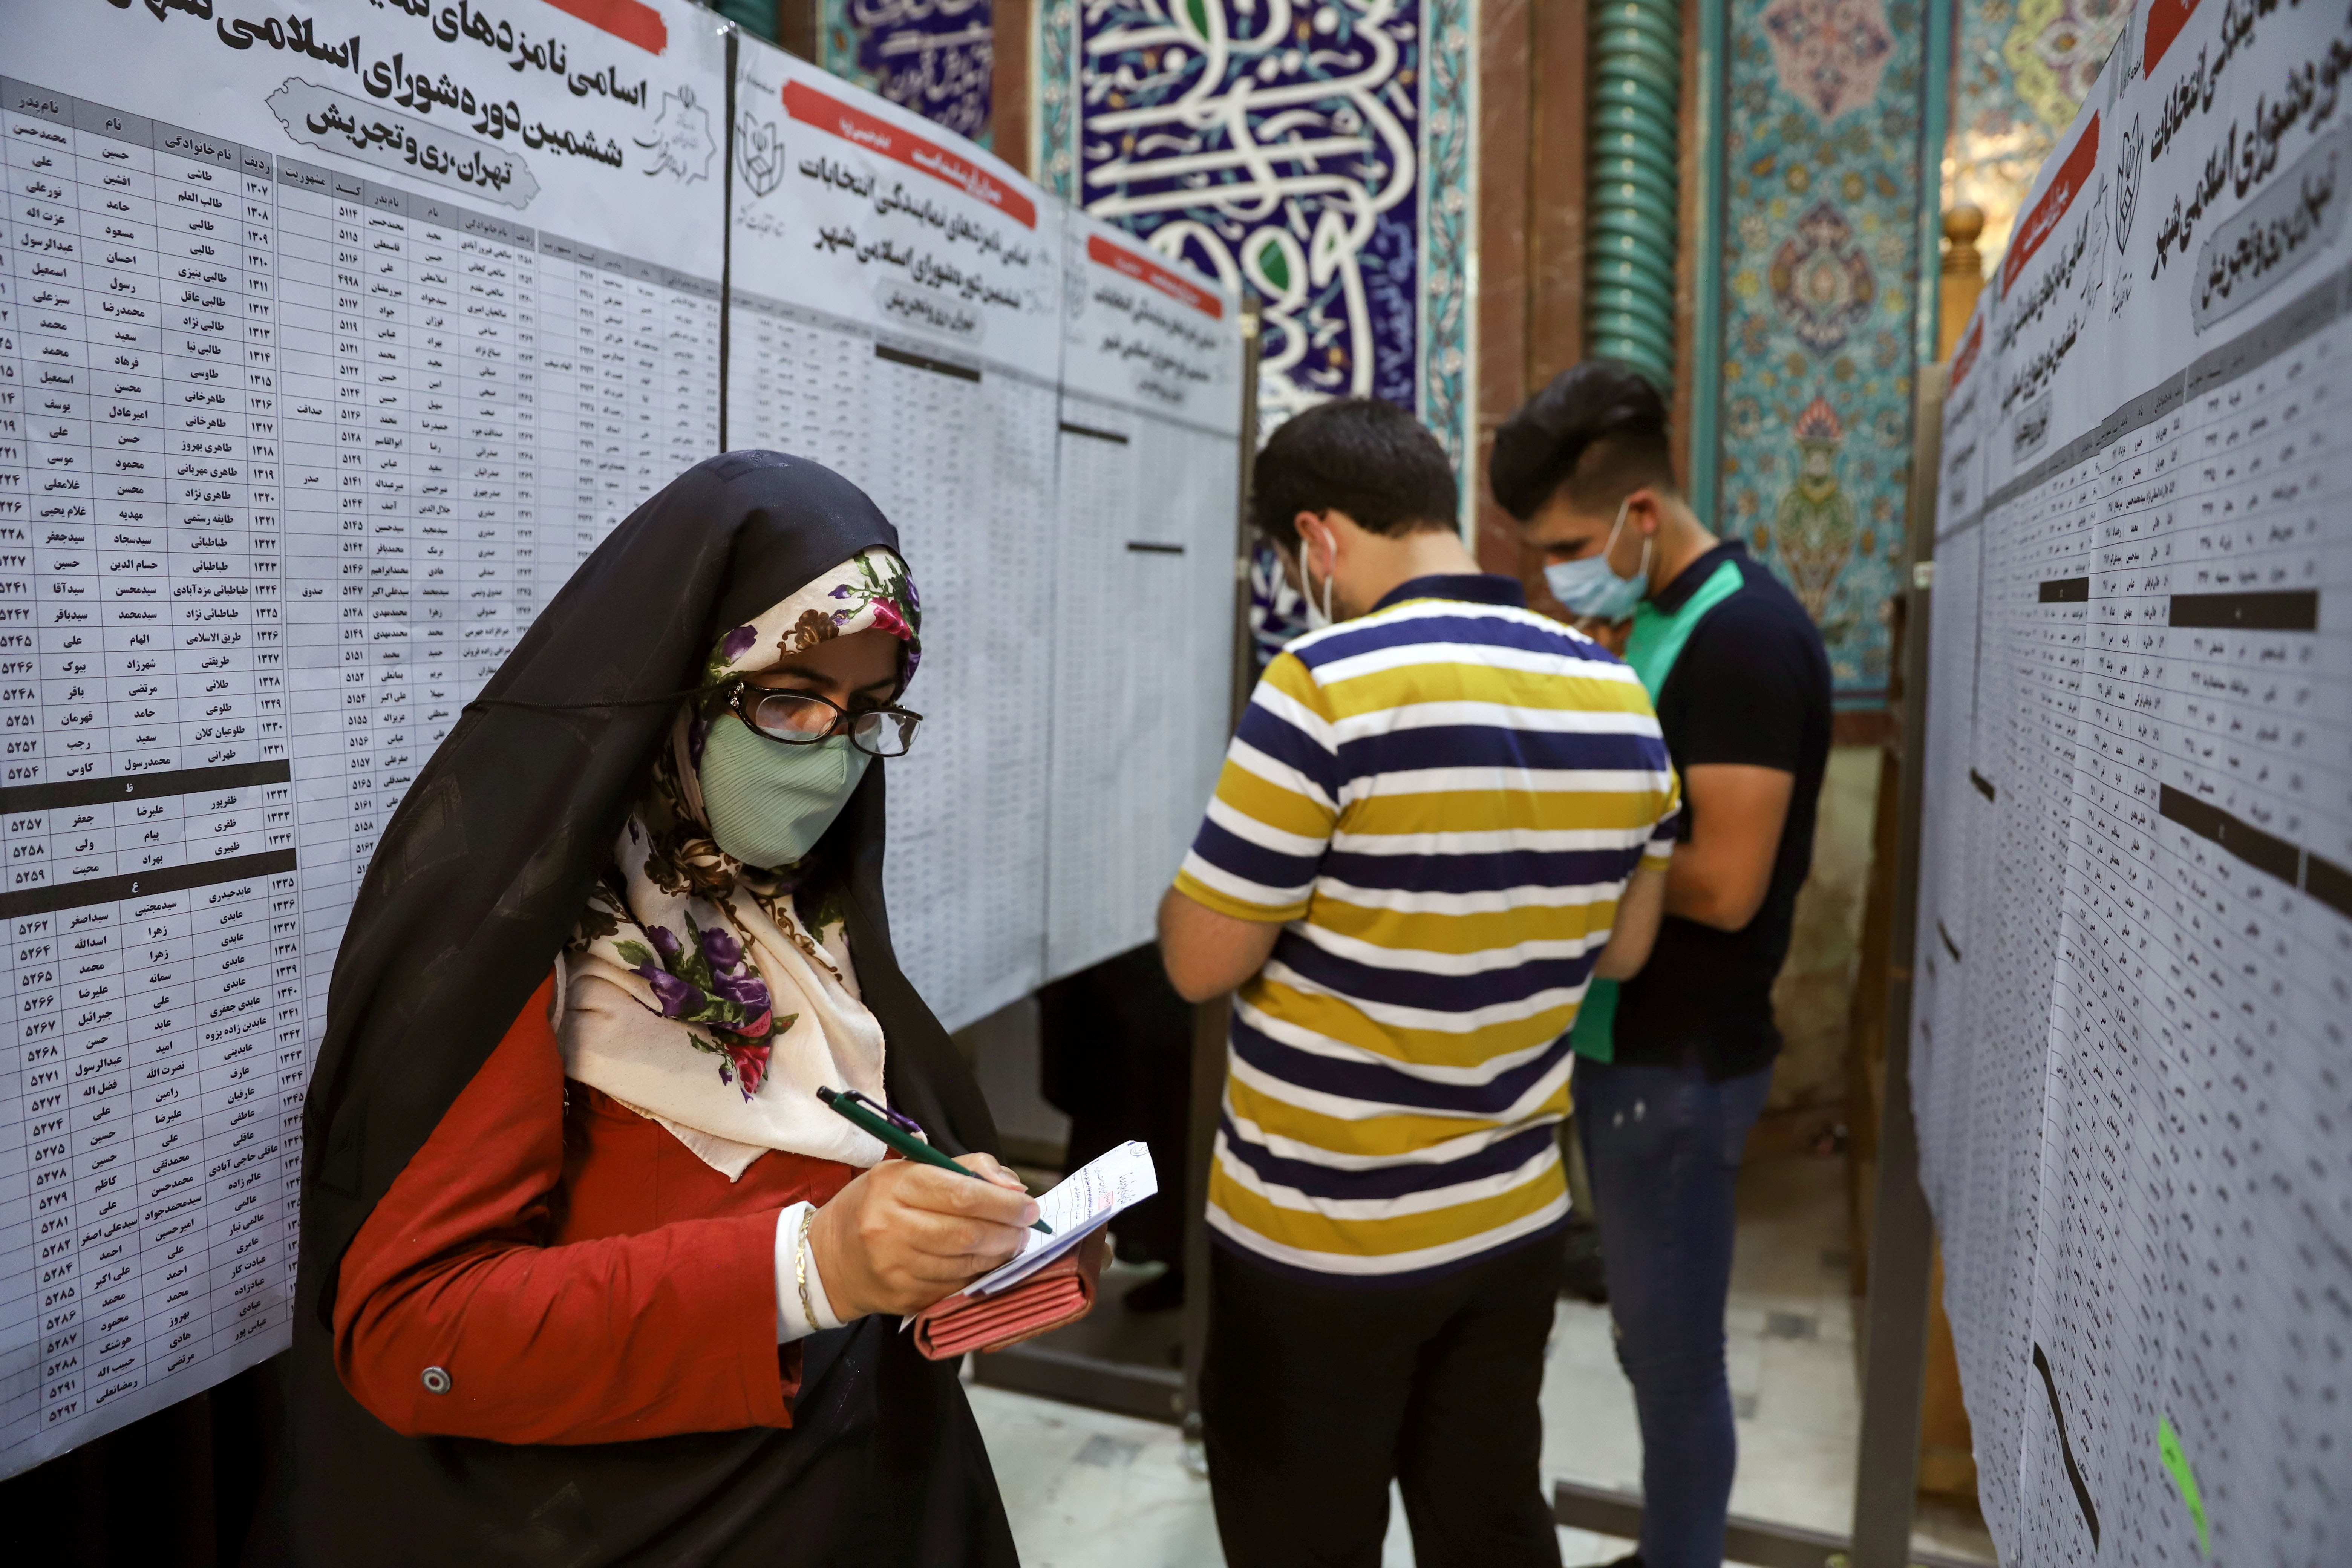 Iranian people check the names of candidates during presidential elections at a polling station in Tehran, Iran June 18, 2021. Majid Asgaripour/WANA (West Asia News Agency) via REUTERS